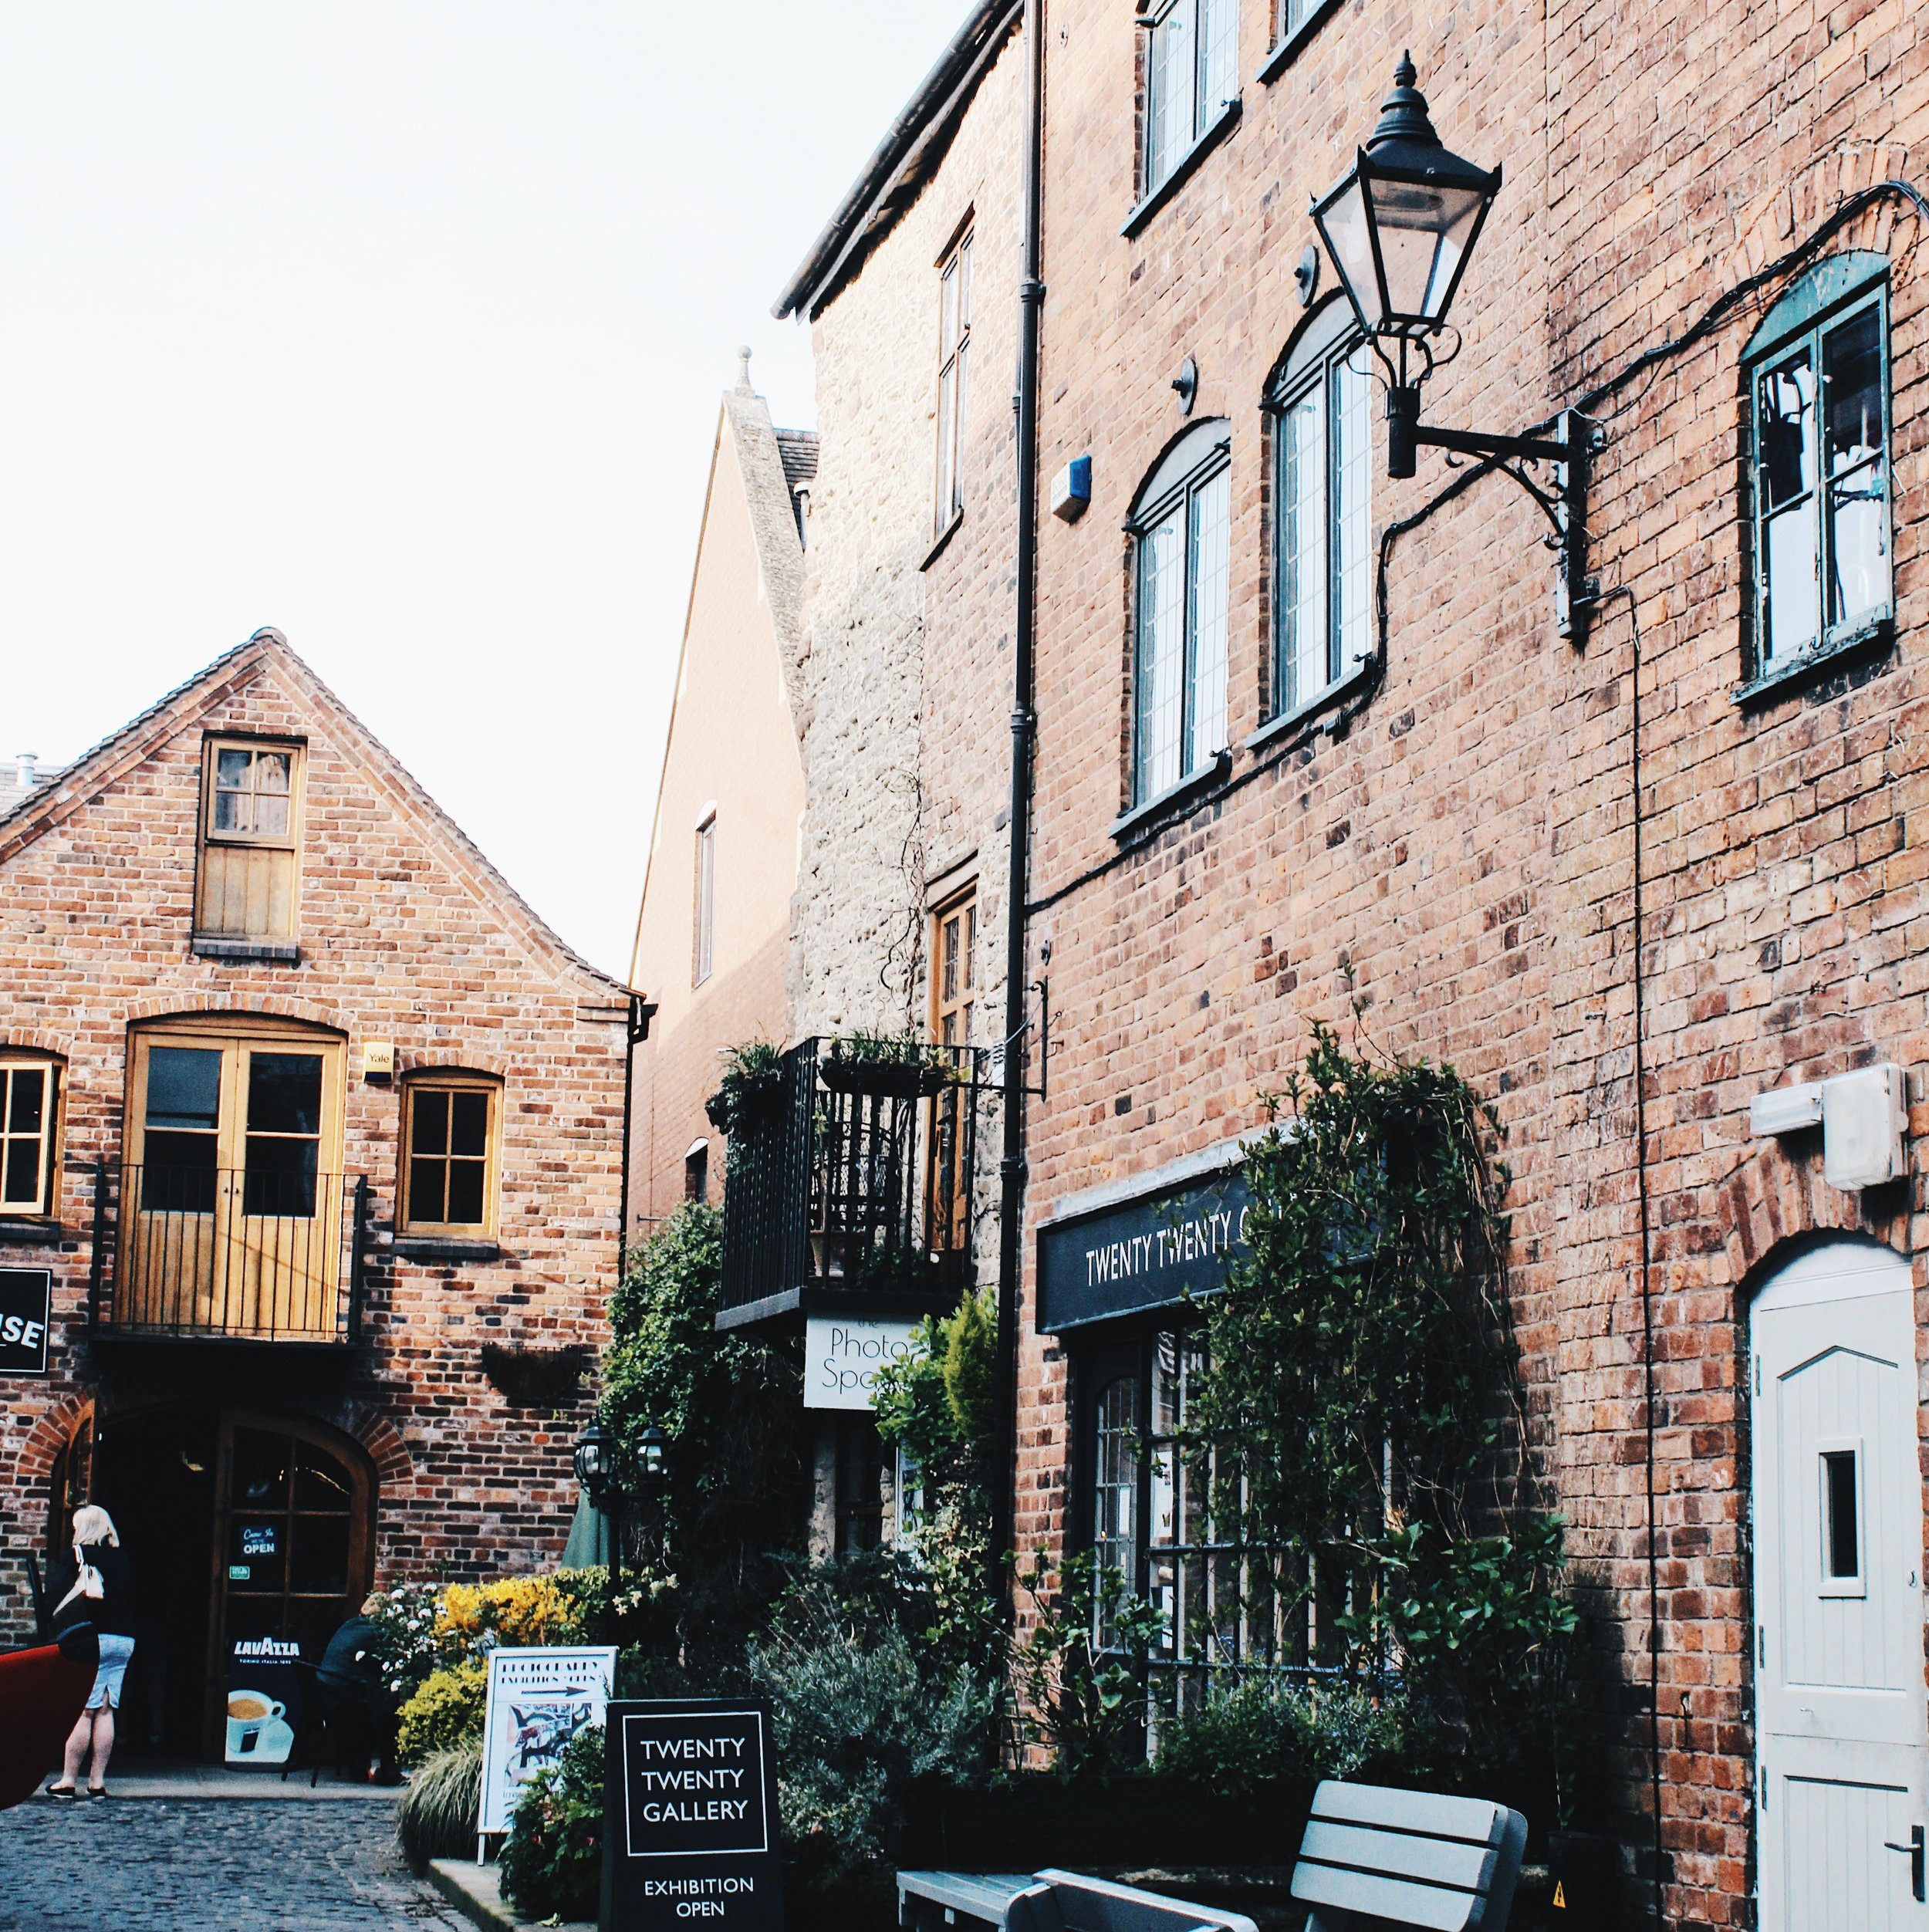 Make sure you explore all of the nooks and crannies of Ludlow or you might miss gems like Twenty Twenty Gallery and the best cafes and restaurants.